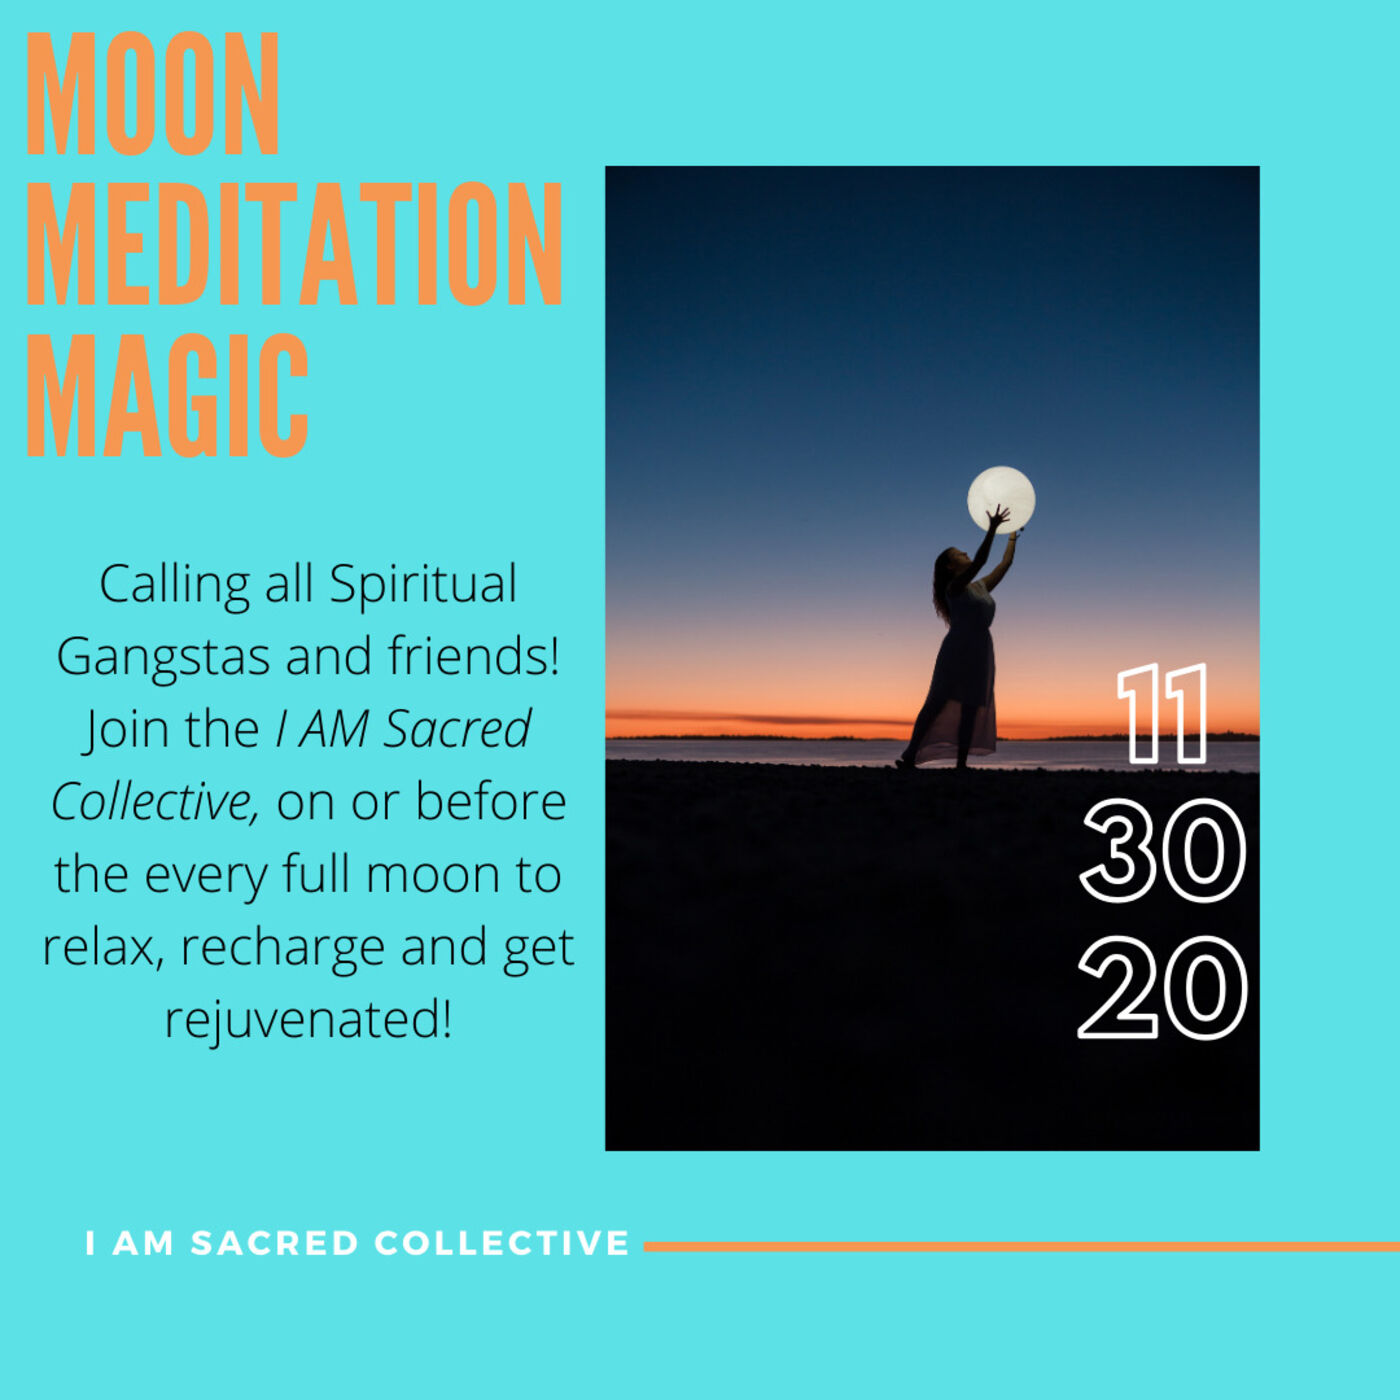 November Moon Mediation Magic REPLAY